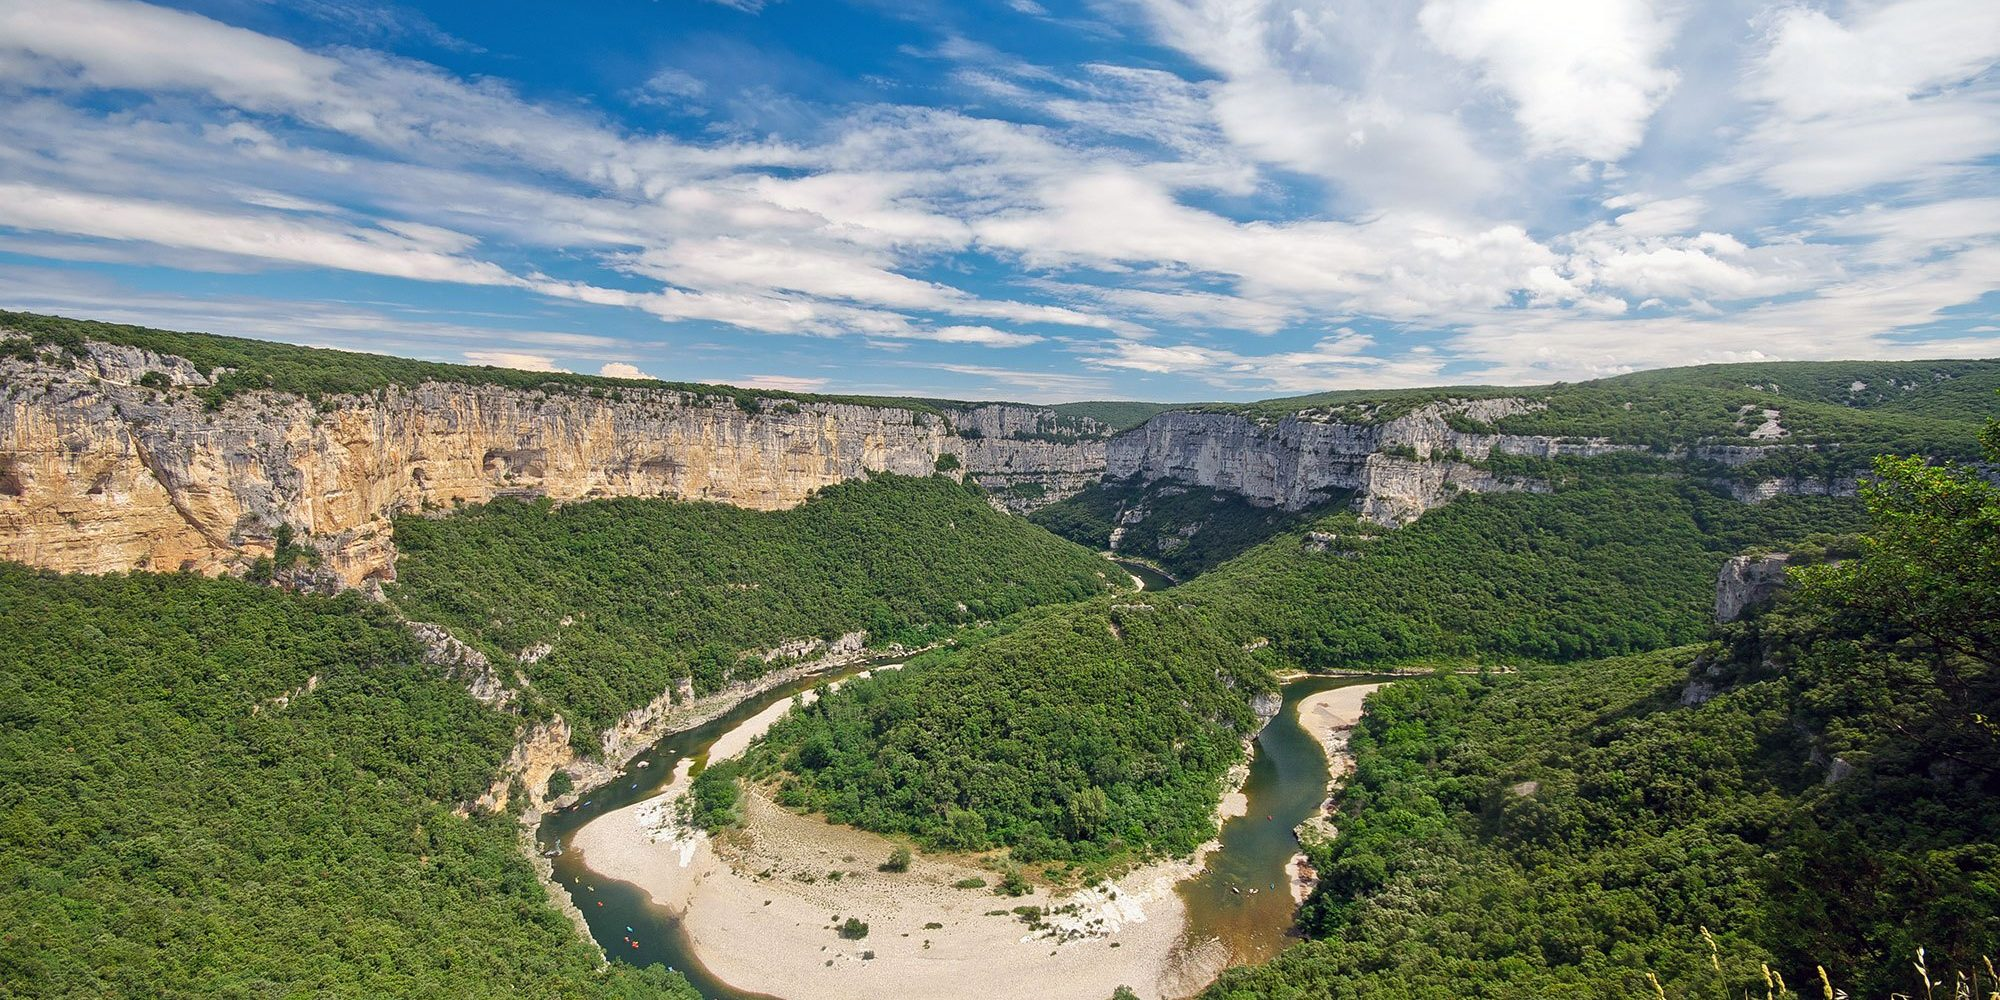 The Gorges de l'Ardèche (Ardèche gorges)